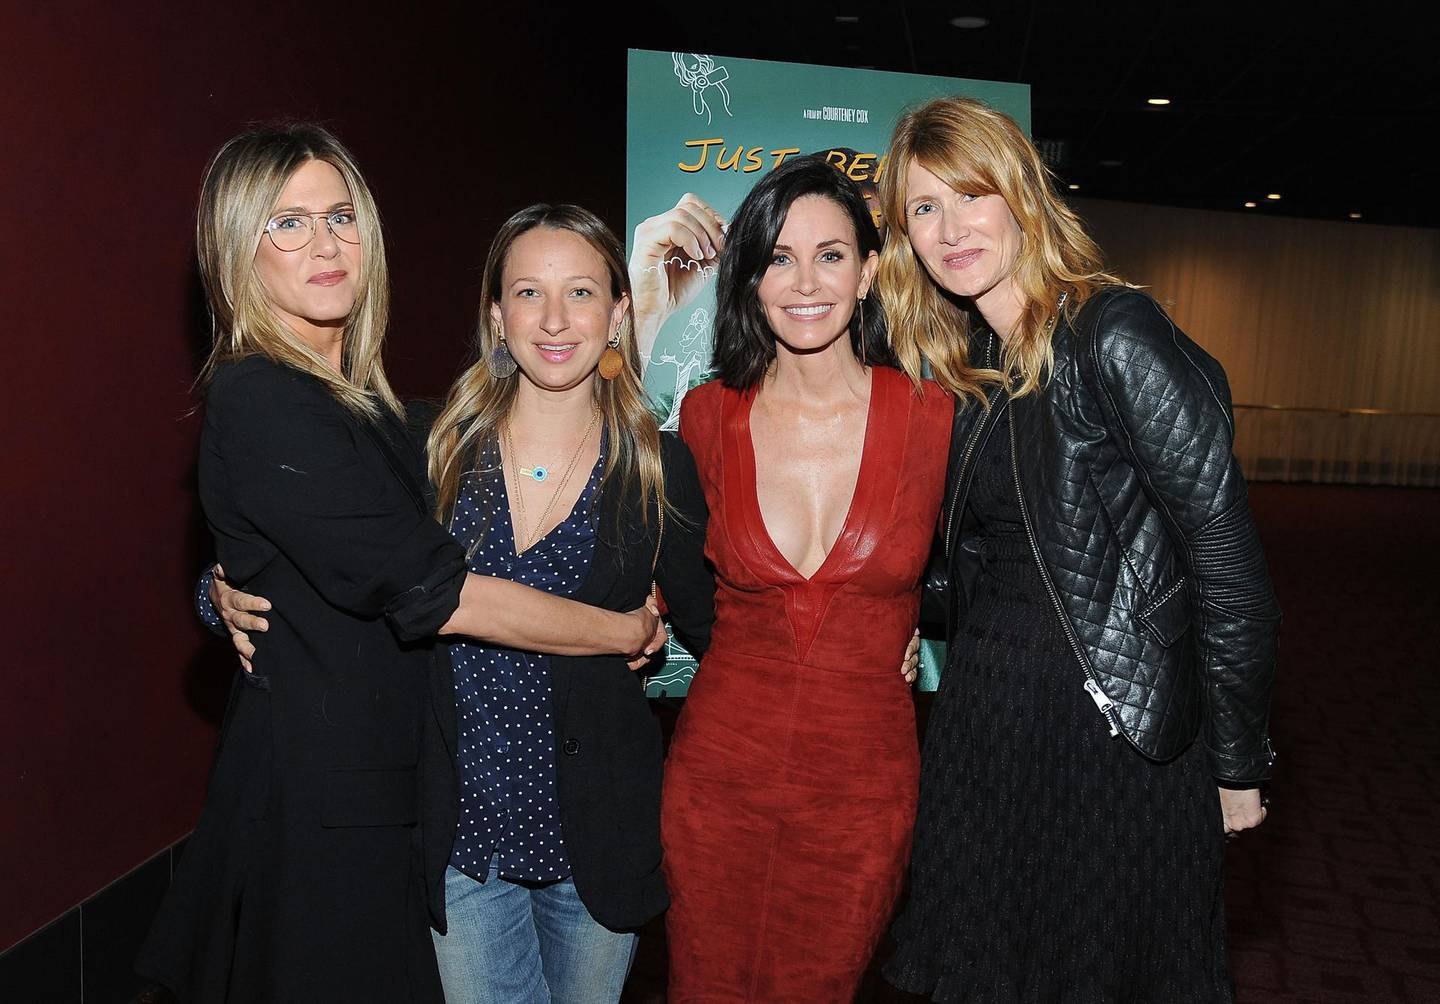 """HOLLYWOOD, CA - APRIL 20: Actress Jennifer Aniston, designer Jen Meyer, director Courteney Cox and actress Laura Dern attend the Los Angeles Special Screening of """"Just Before I Go"""" at ArcLight Hollywood on April 20, 2015 in Hollywood, California.   Angela Weiss/Getty Images for Darin Pfeiffer Consulting/AFP"""